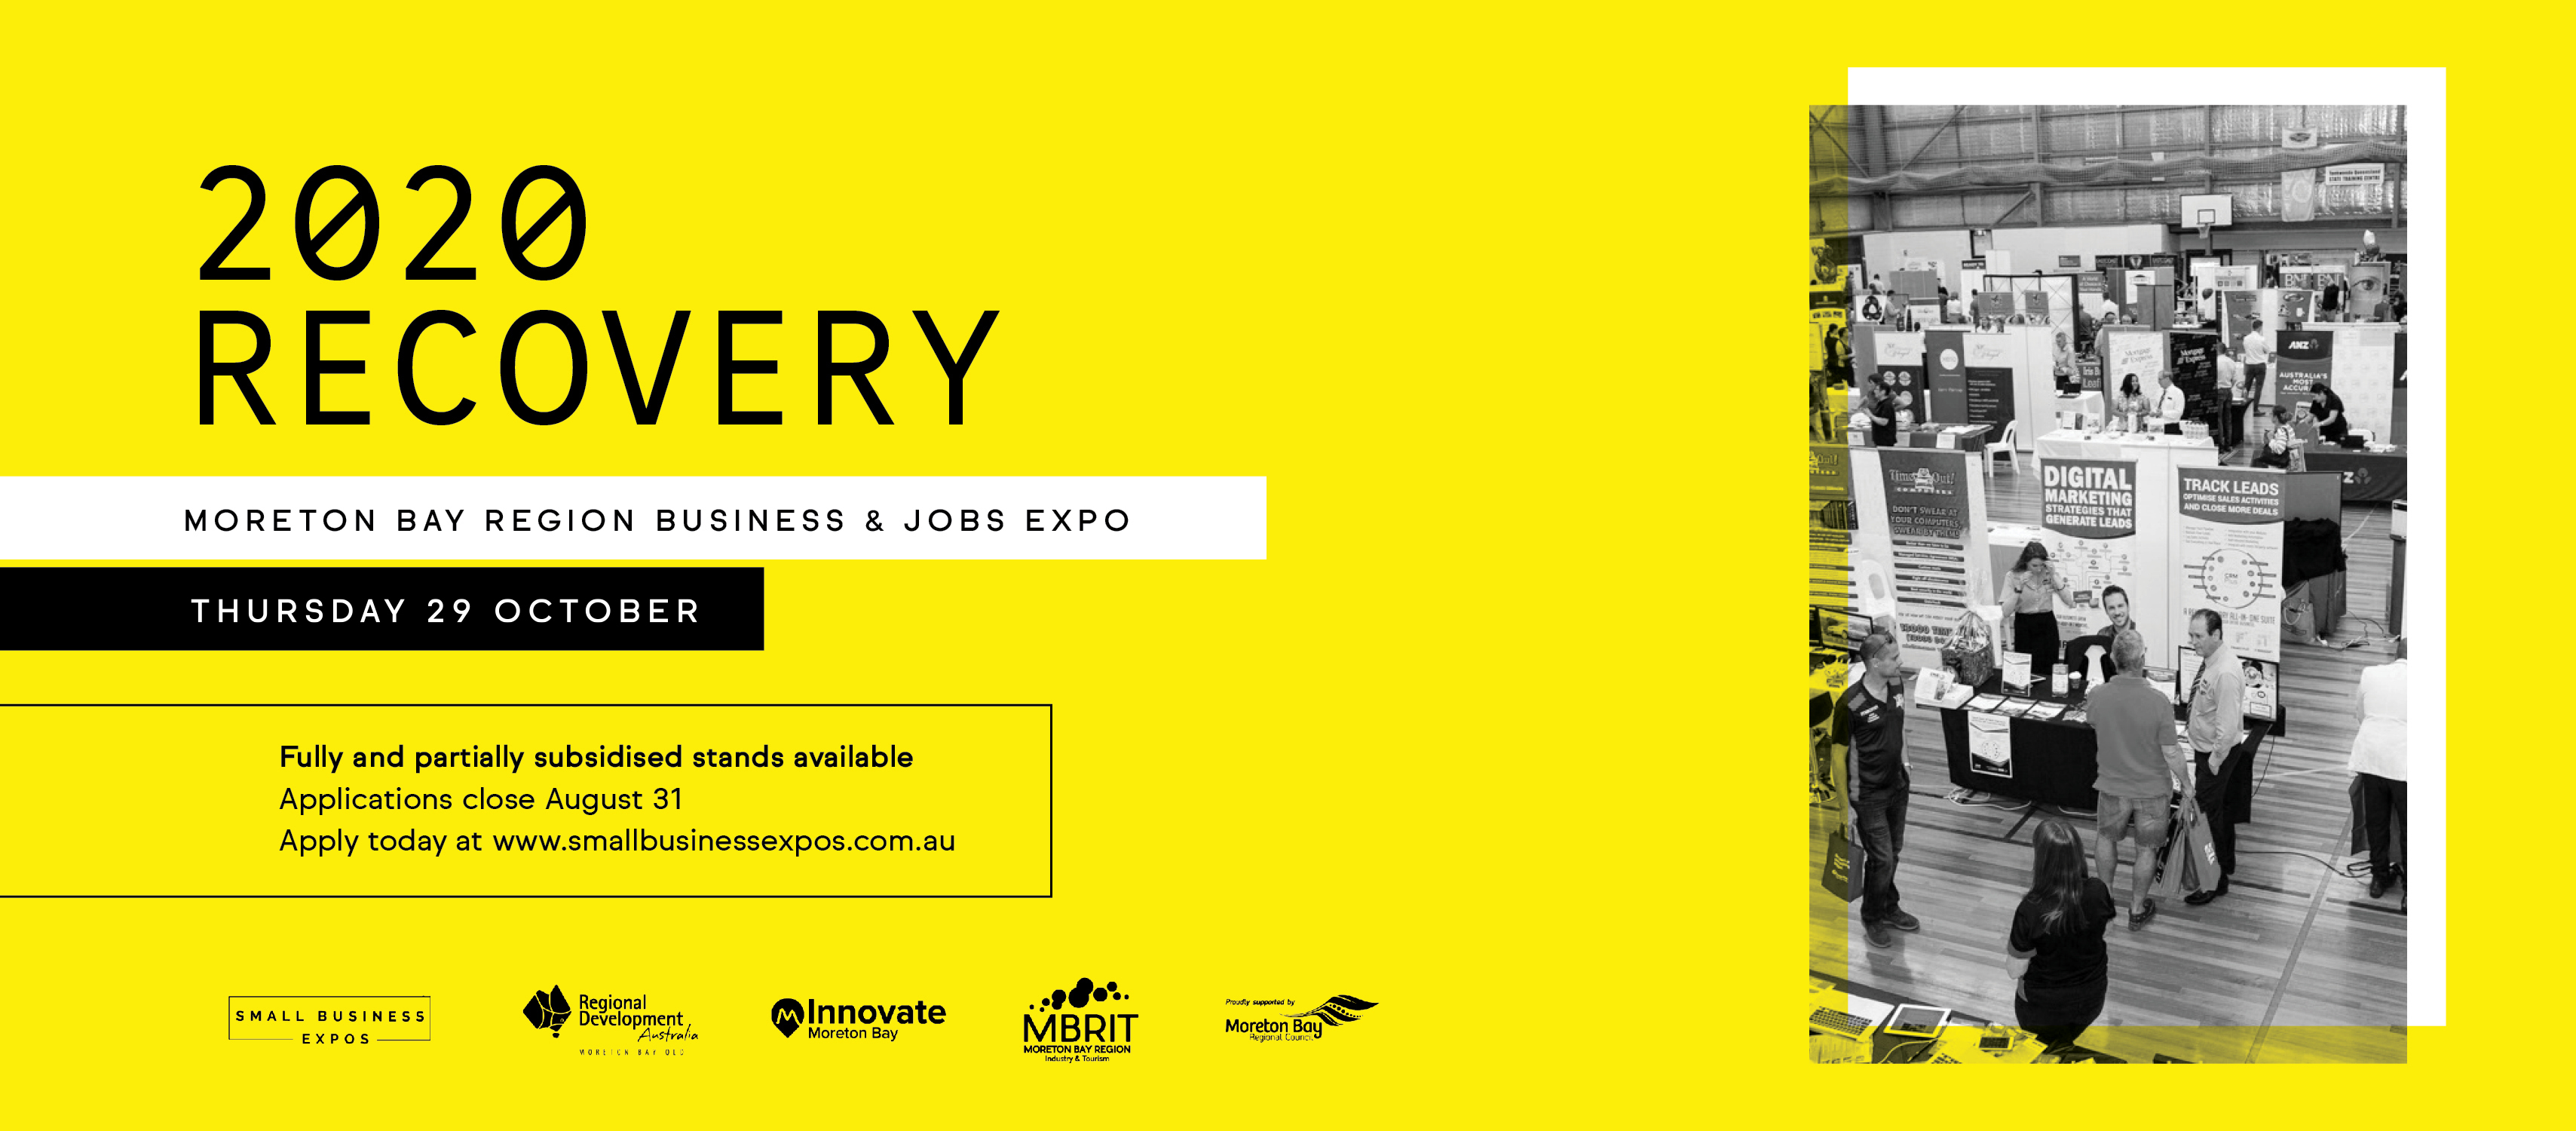 Business Expos | Brisbane | Gold Coast | Small Business Expos | Small Business Facebook Banner (3)